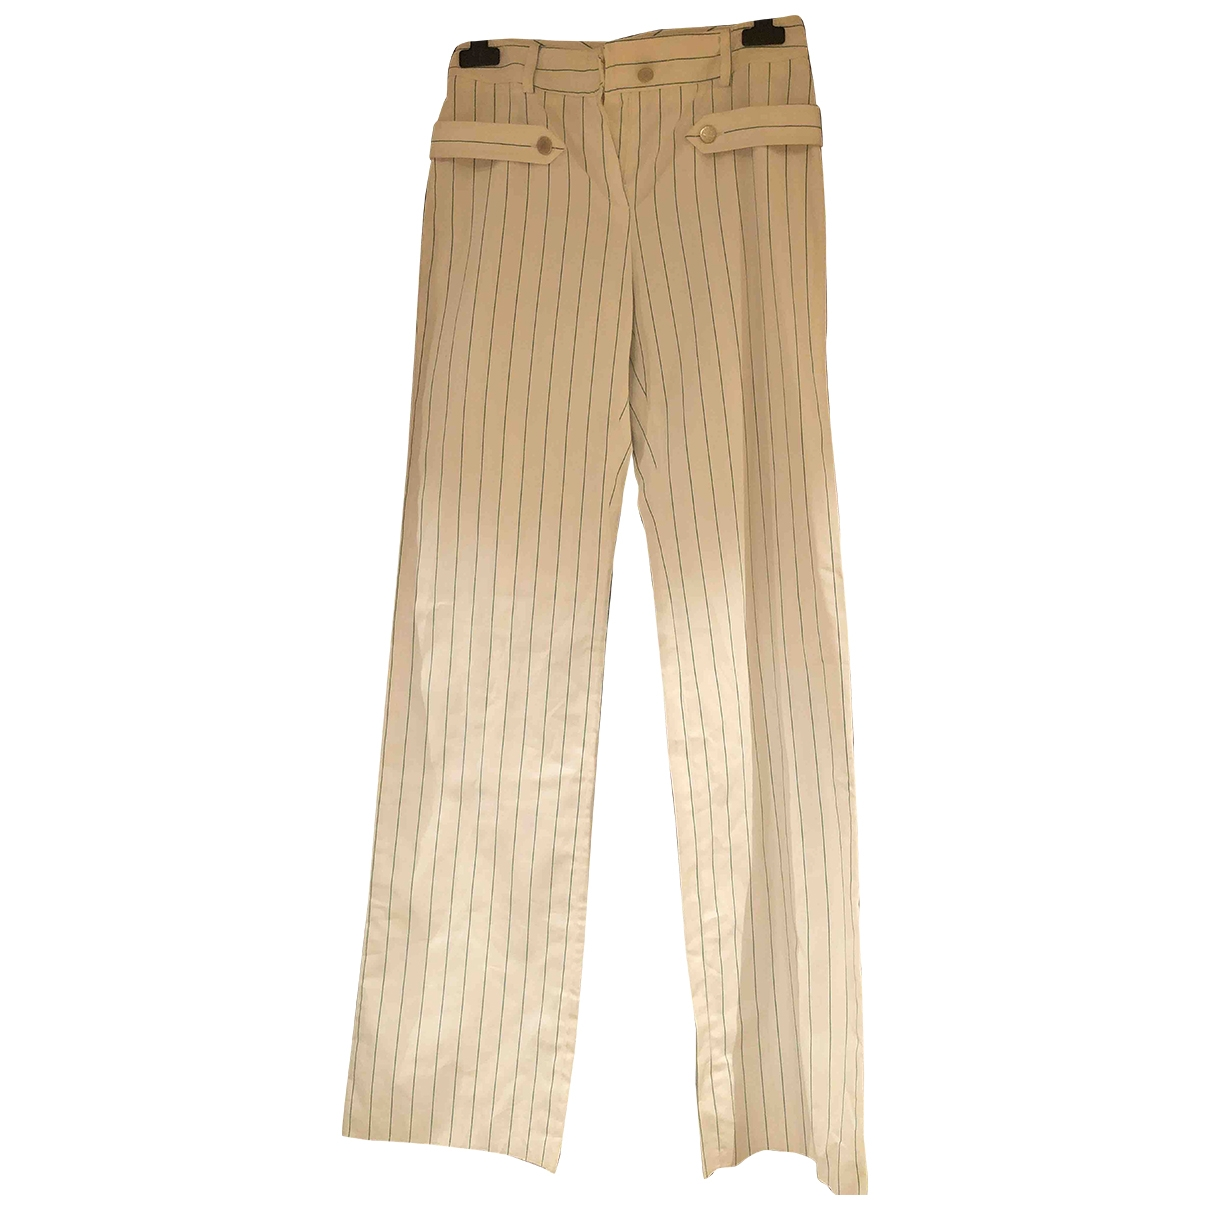 Valentino Garavani \N White Cotton Trousers for Women 38 IT